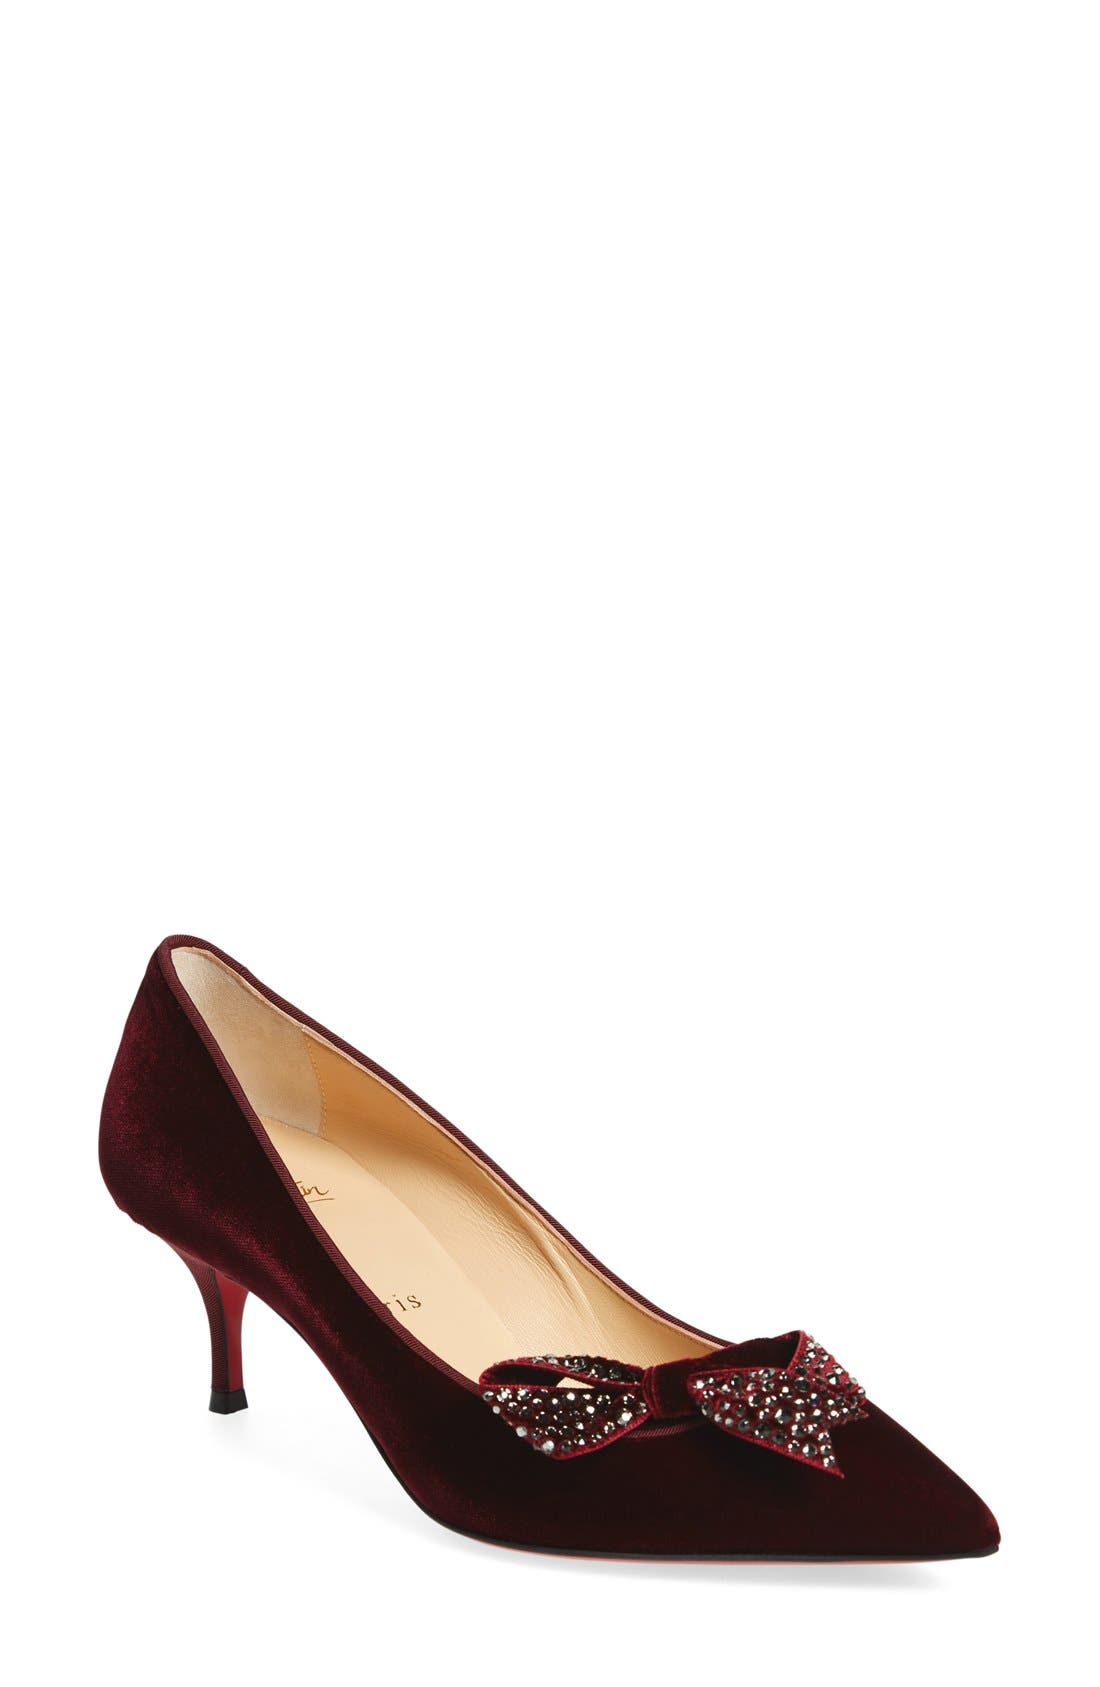 Alternate Image 1 Selected - Christian Louboutin 'Mlle Menule' Embellished Bow Kitten Heel Pump